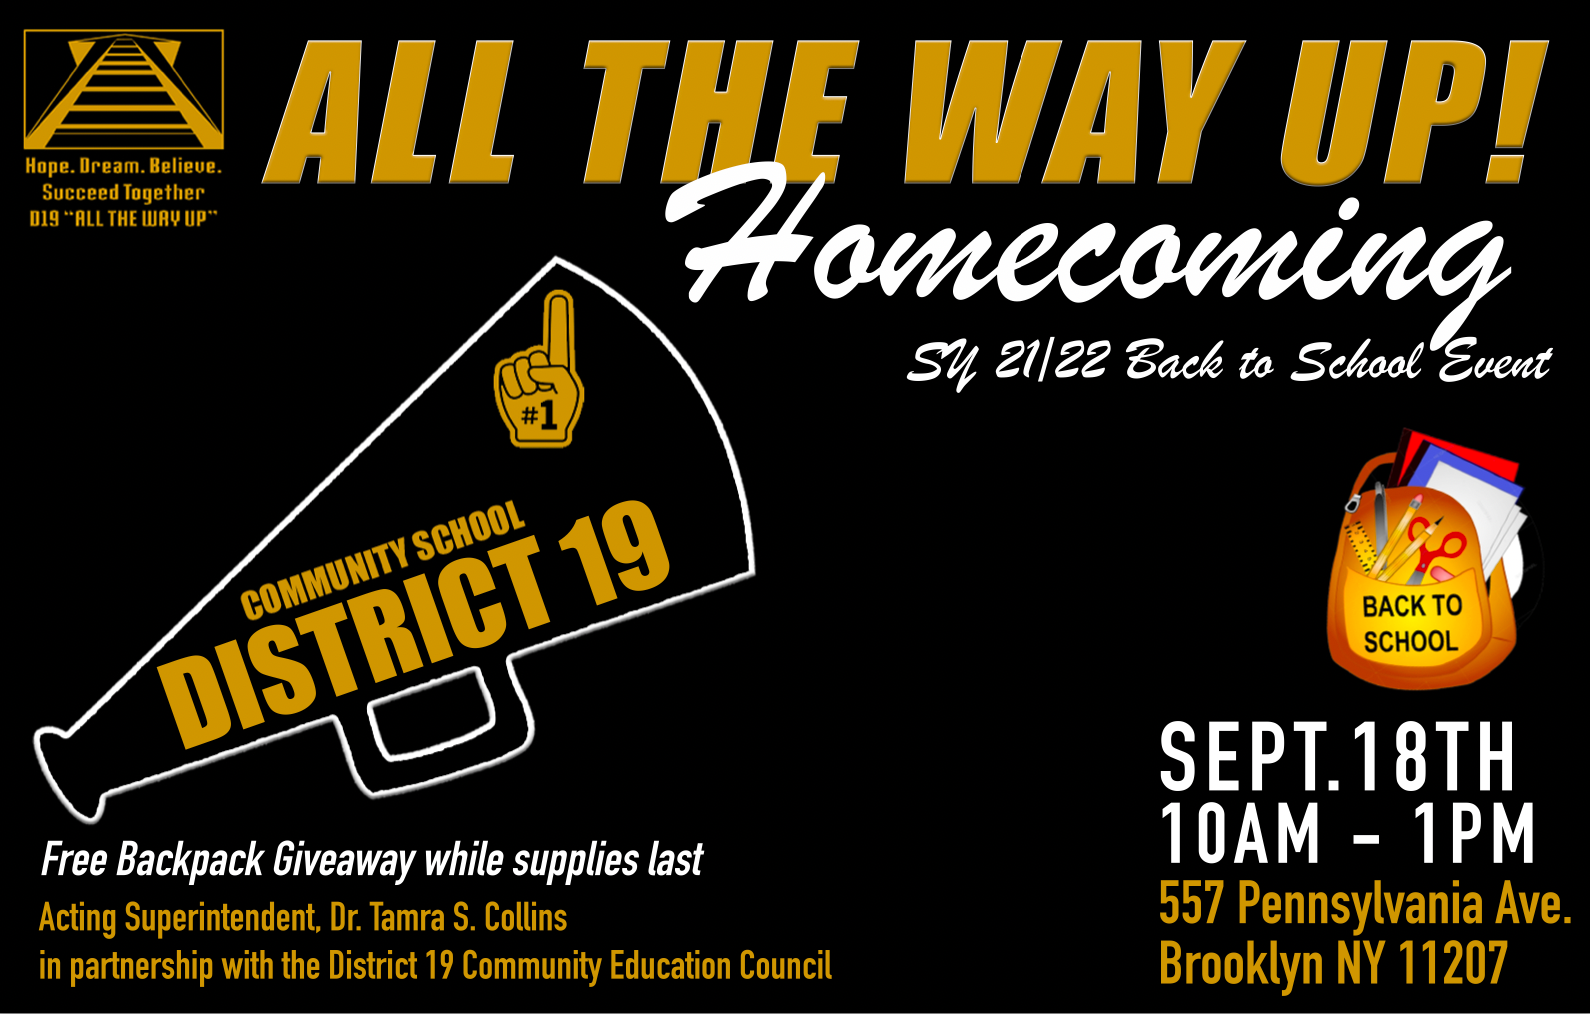 District 19 Homecoming